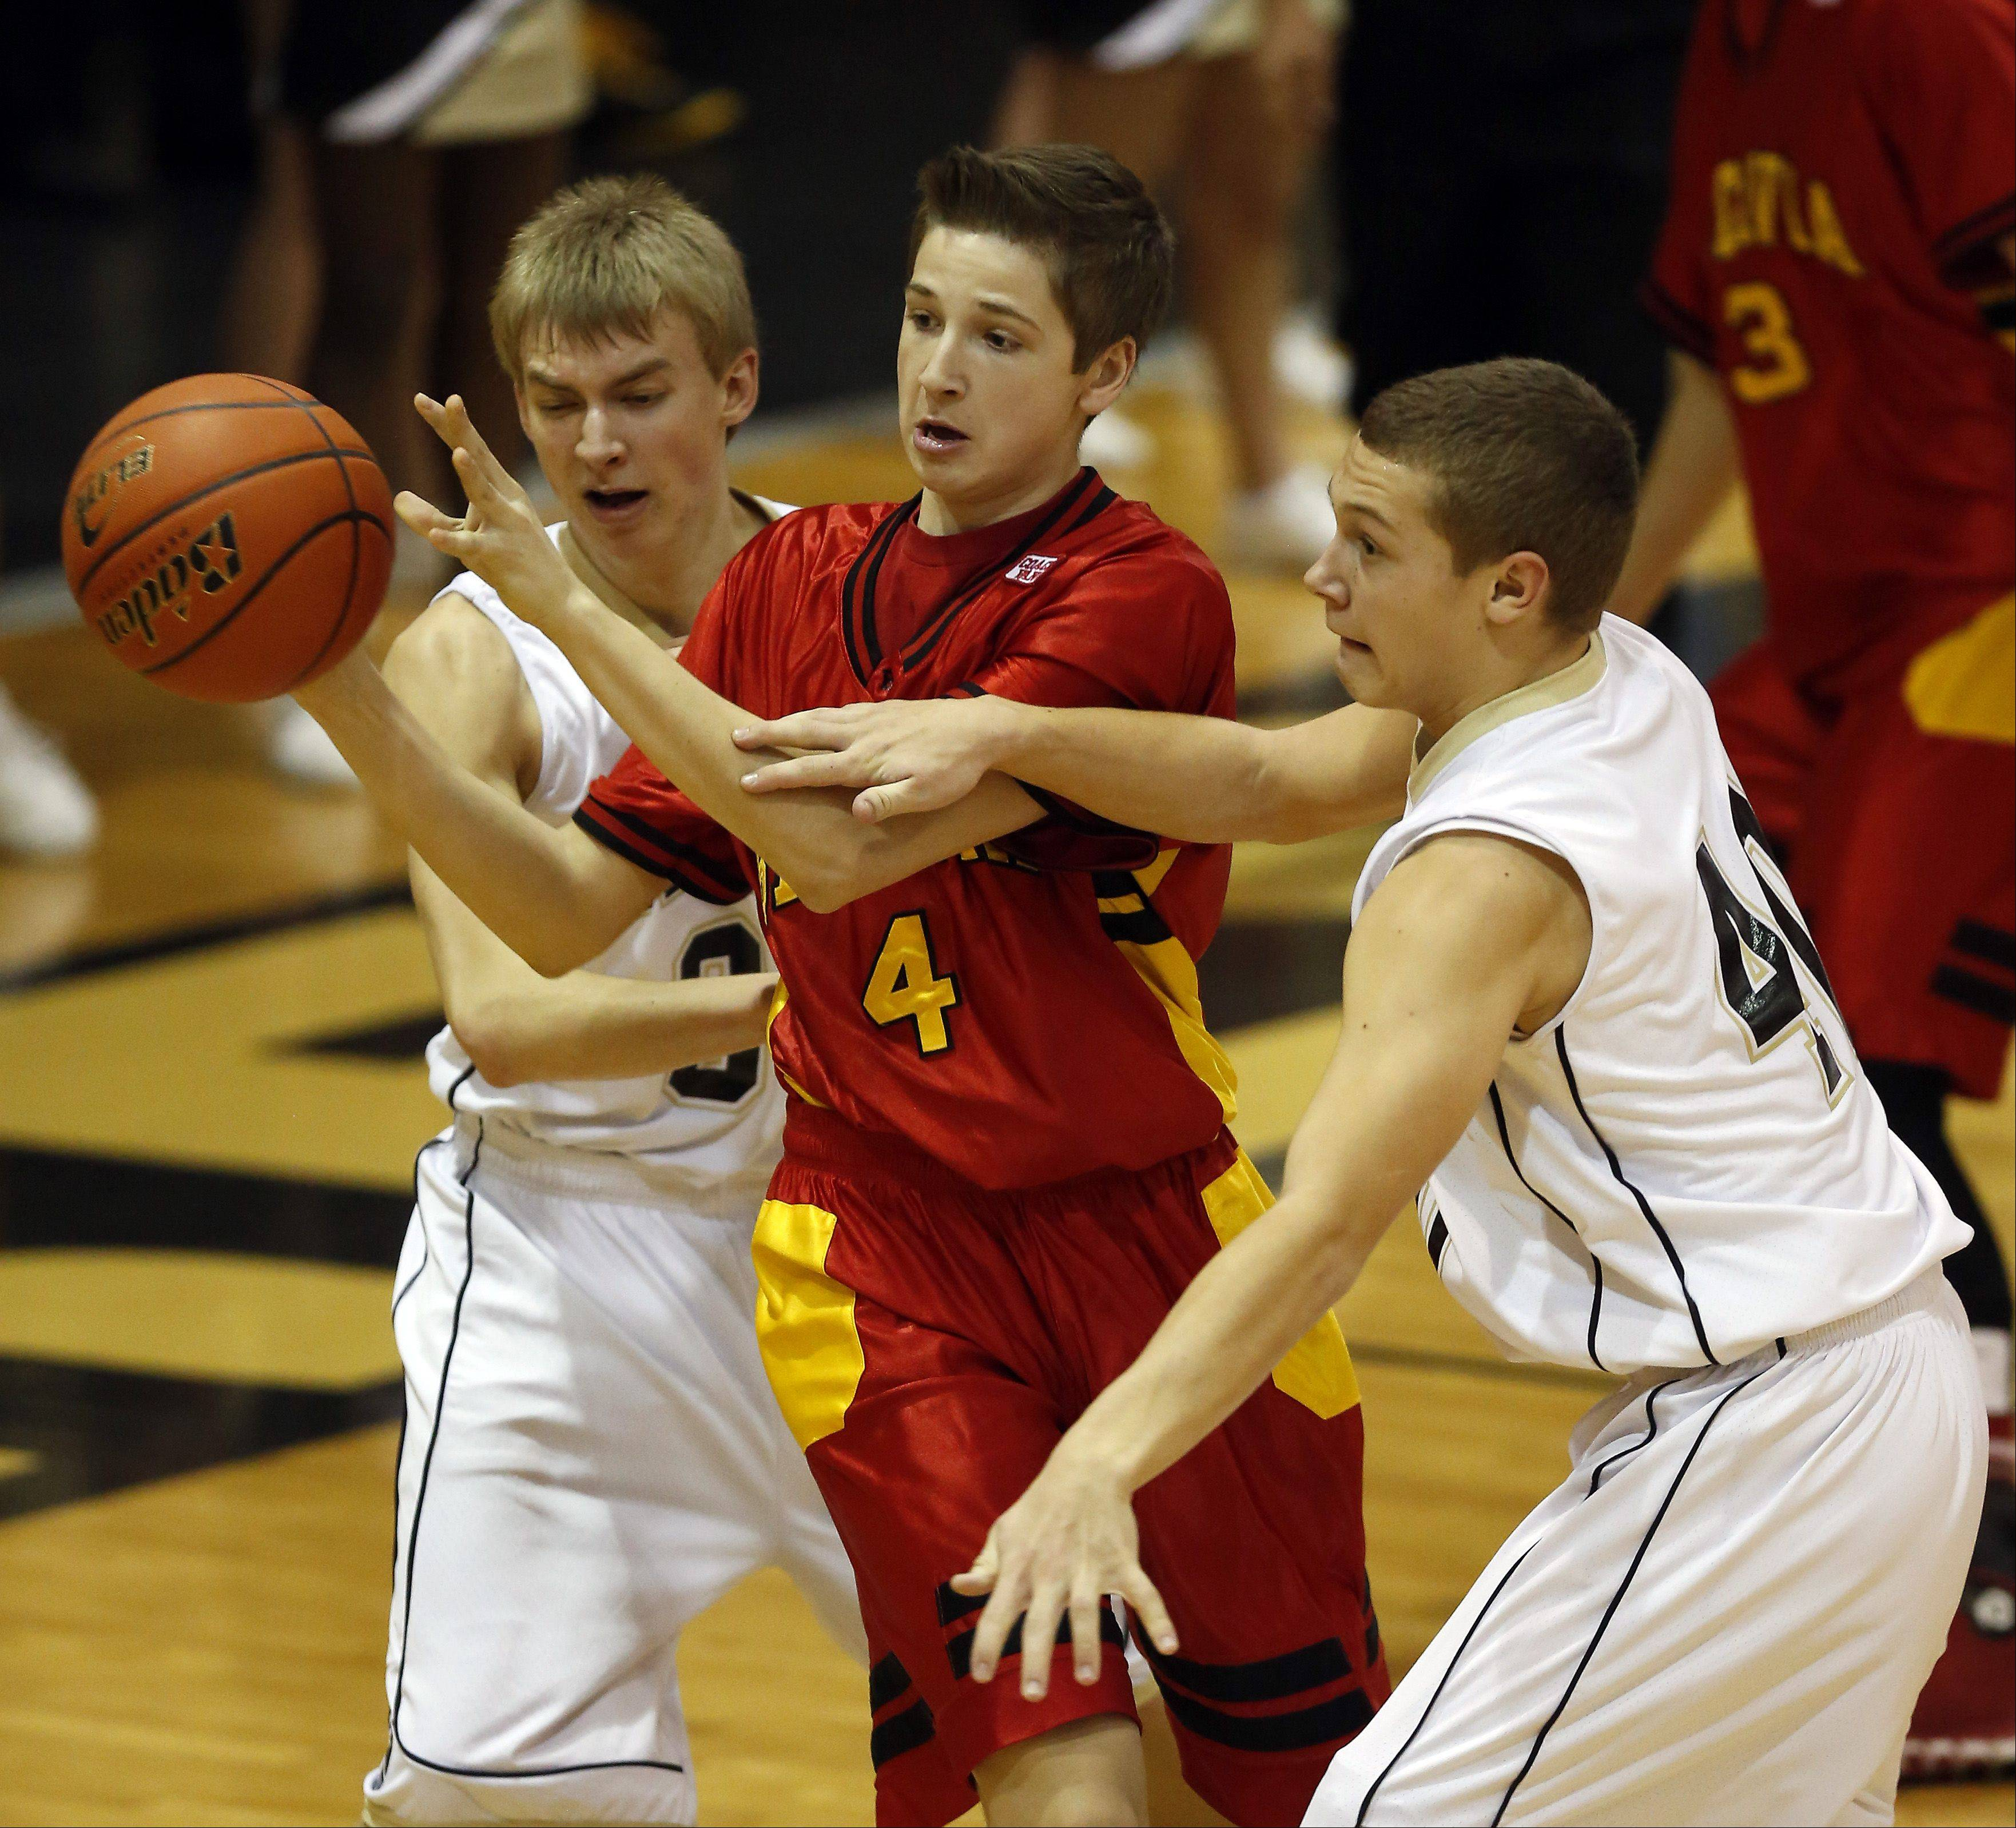 Images: Batavia vs. Streamwood boys basketball